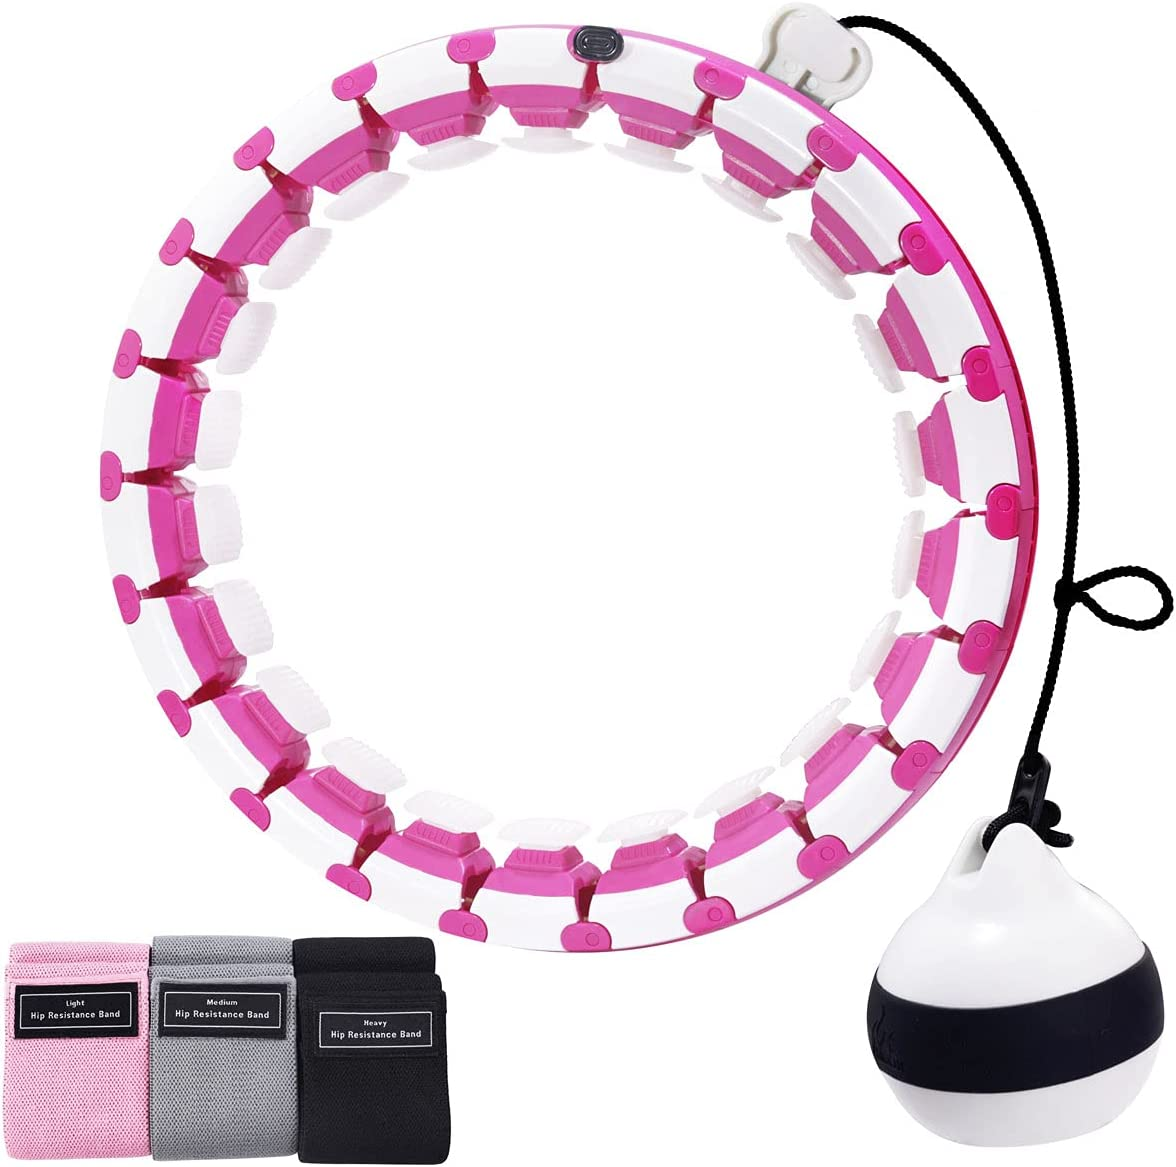 BBG Weighted Hoola Free Shipping New Hoops Smart Hula Fall Will 24 not Branded goods That Hoop